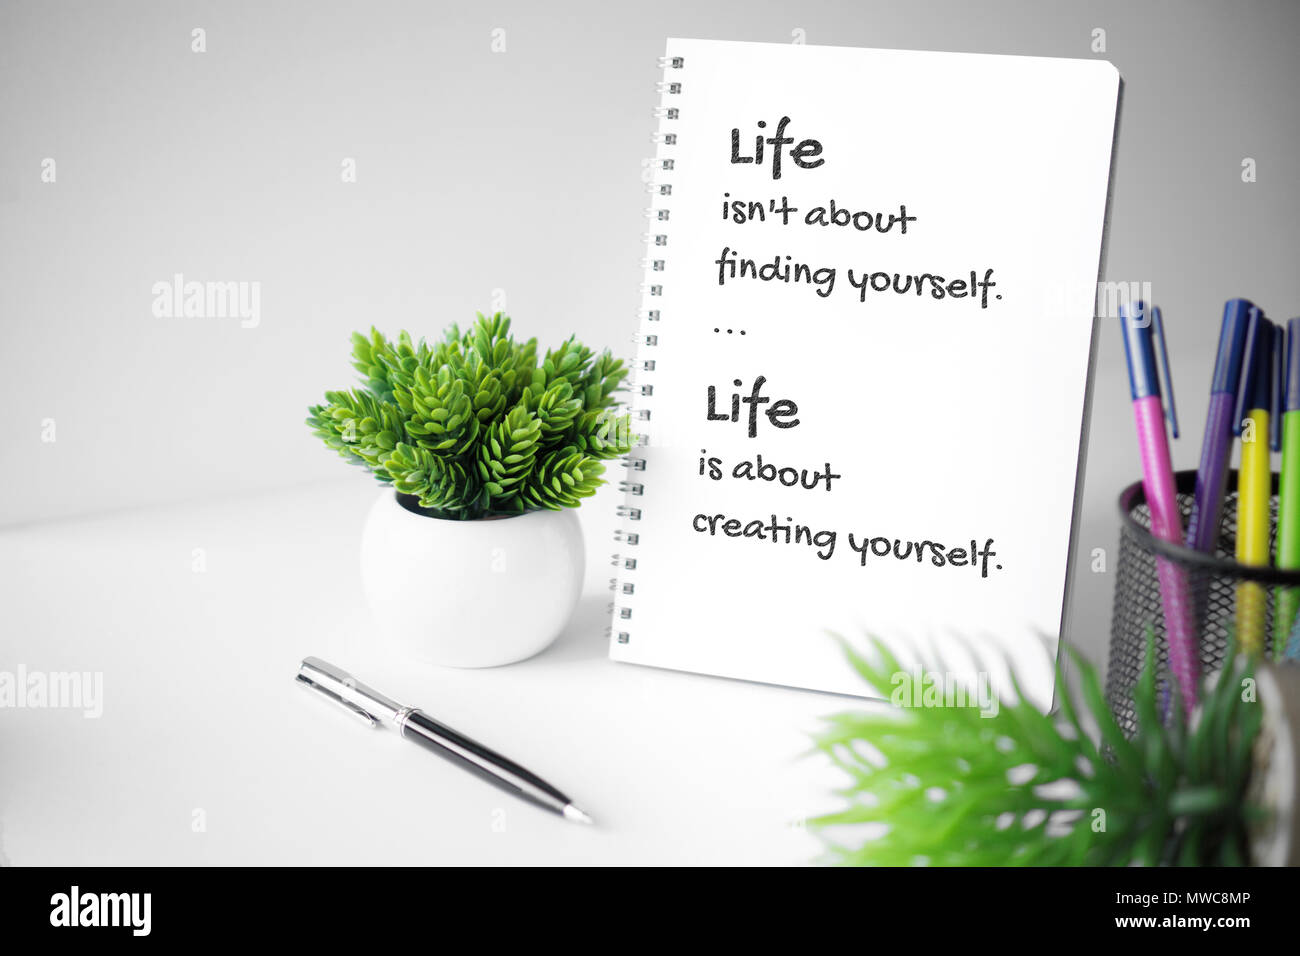 Motivational And Inspirational Quote Wisdom Quote About Life Notebook With Potted Plant Stock Photo Alamy